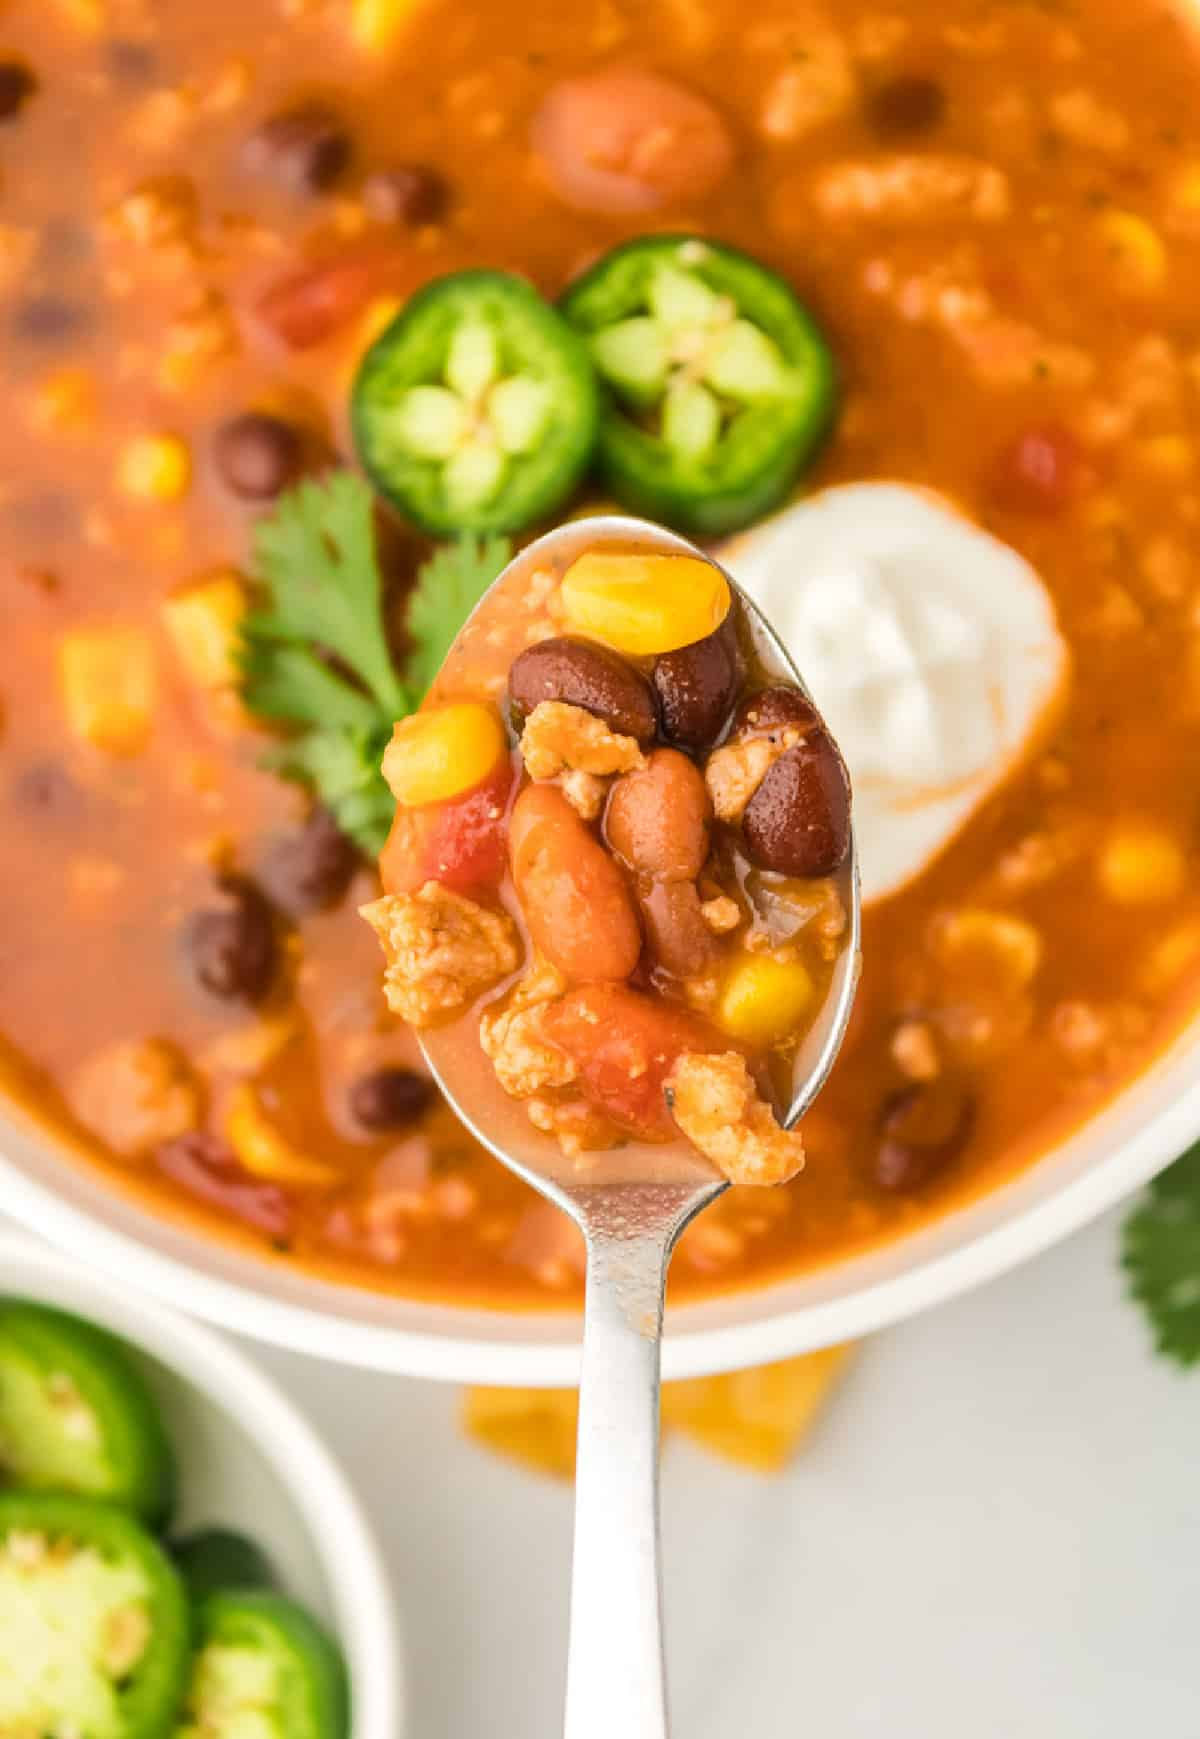 A spoon taking a bite out of a bowl of taco soup.